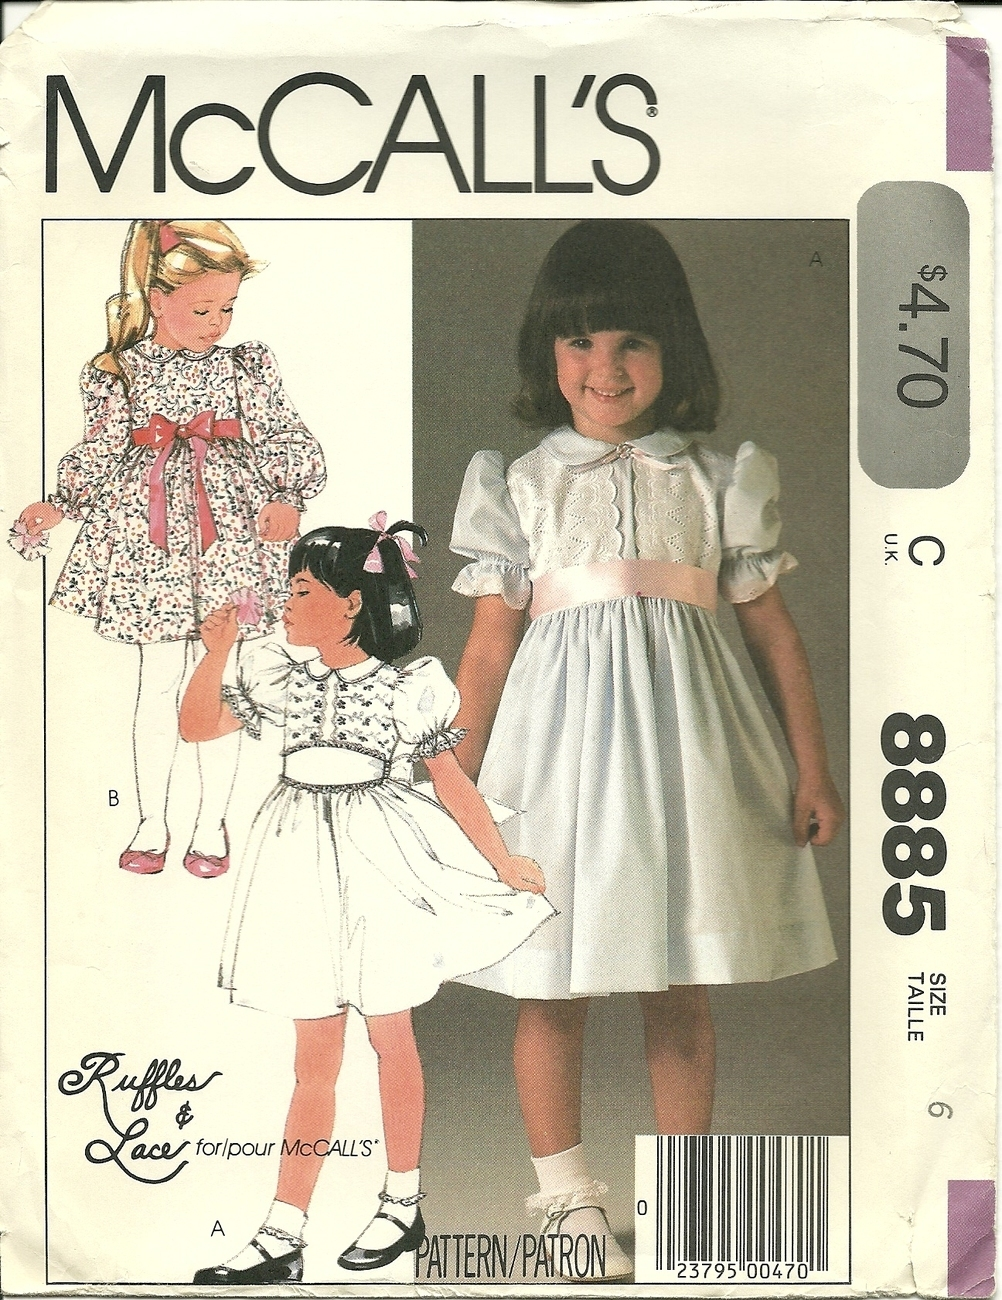 mccall girls Includes pattern pieces and sewing instructions made by mccall's patterns butterick patterns b4434 toddlers'/children's dress, size cb (1-2-3) by butterick patterns.